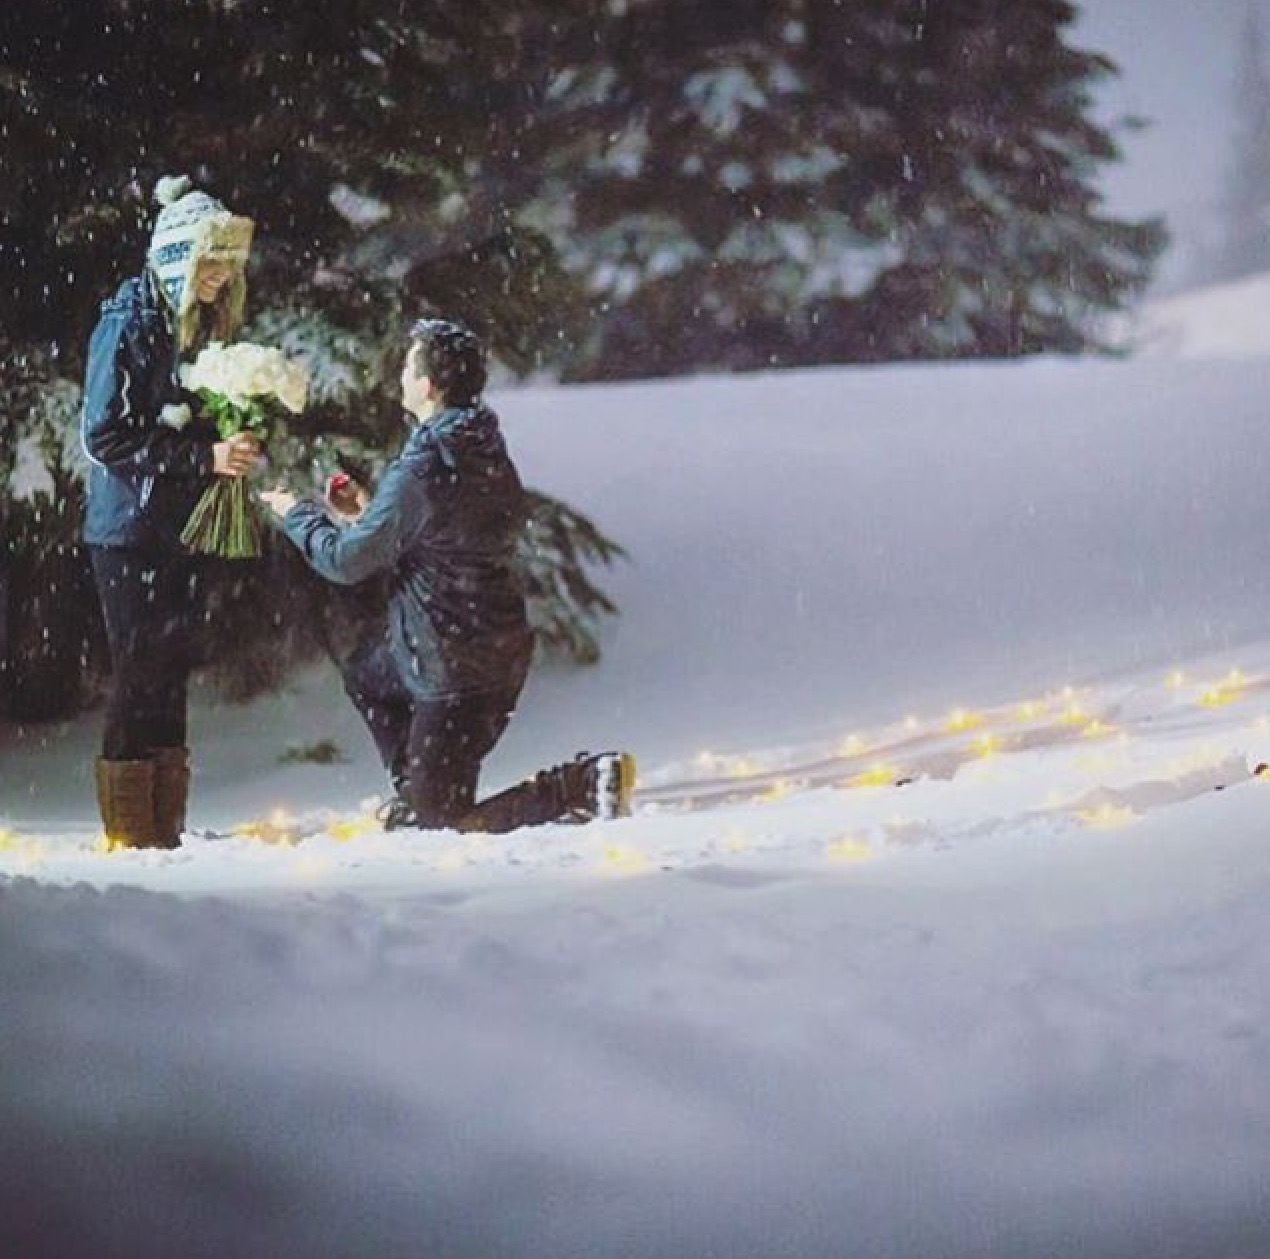 Candles in the snow proposal